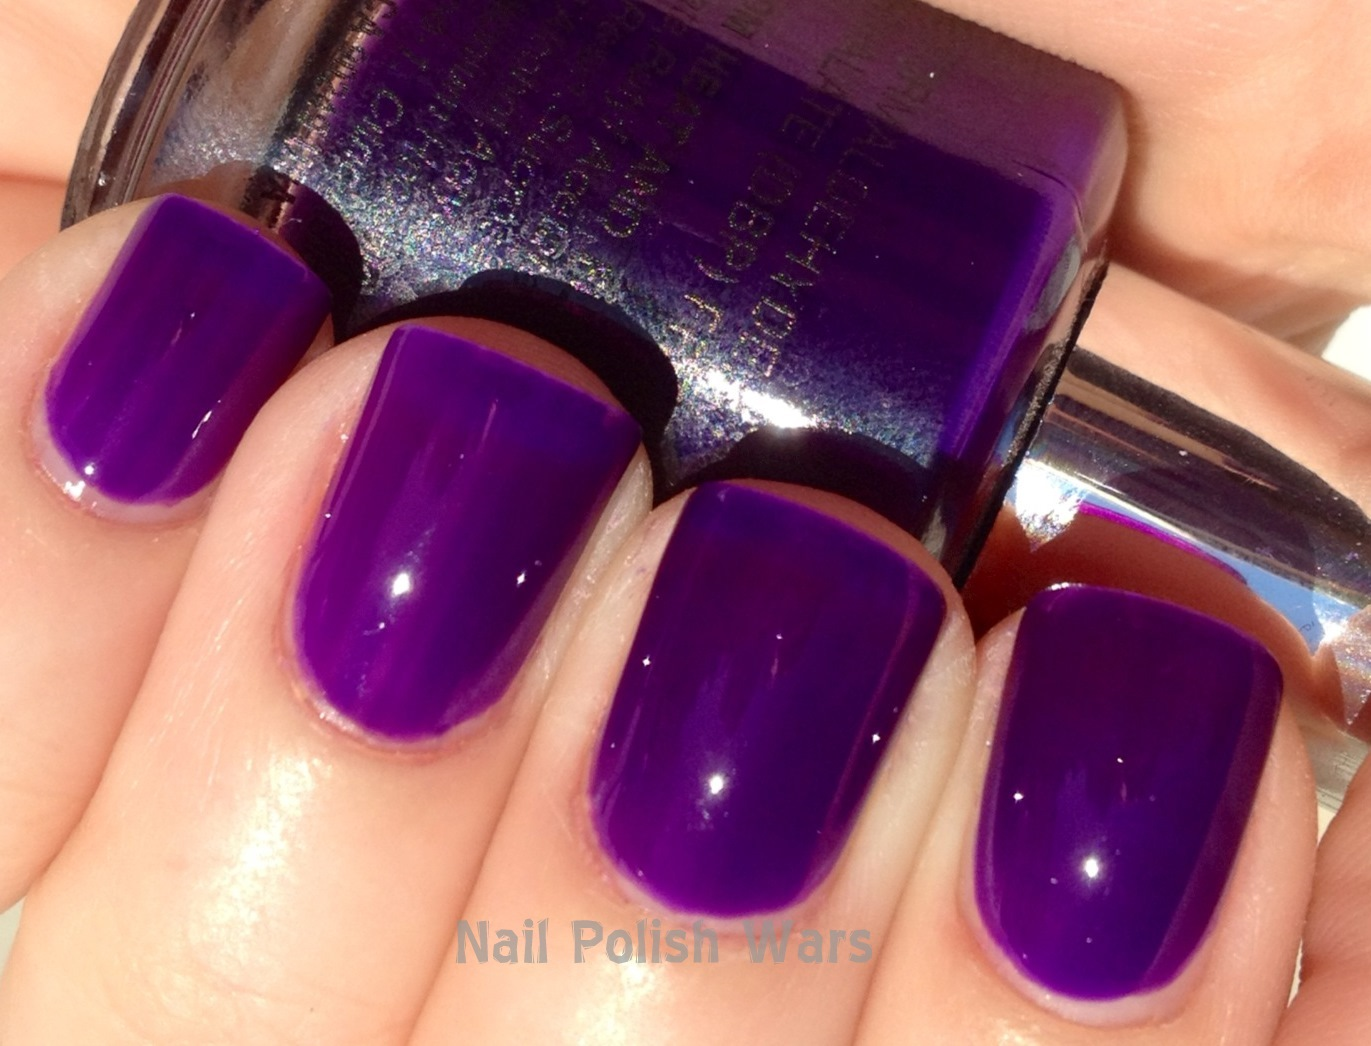 Nail Polish Wars: Madly in lust with Hot Purple